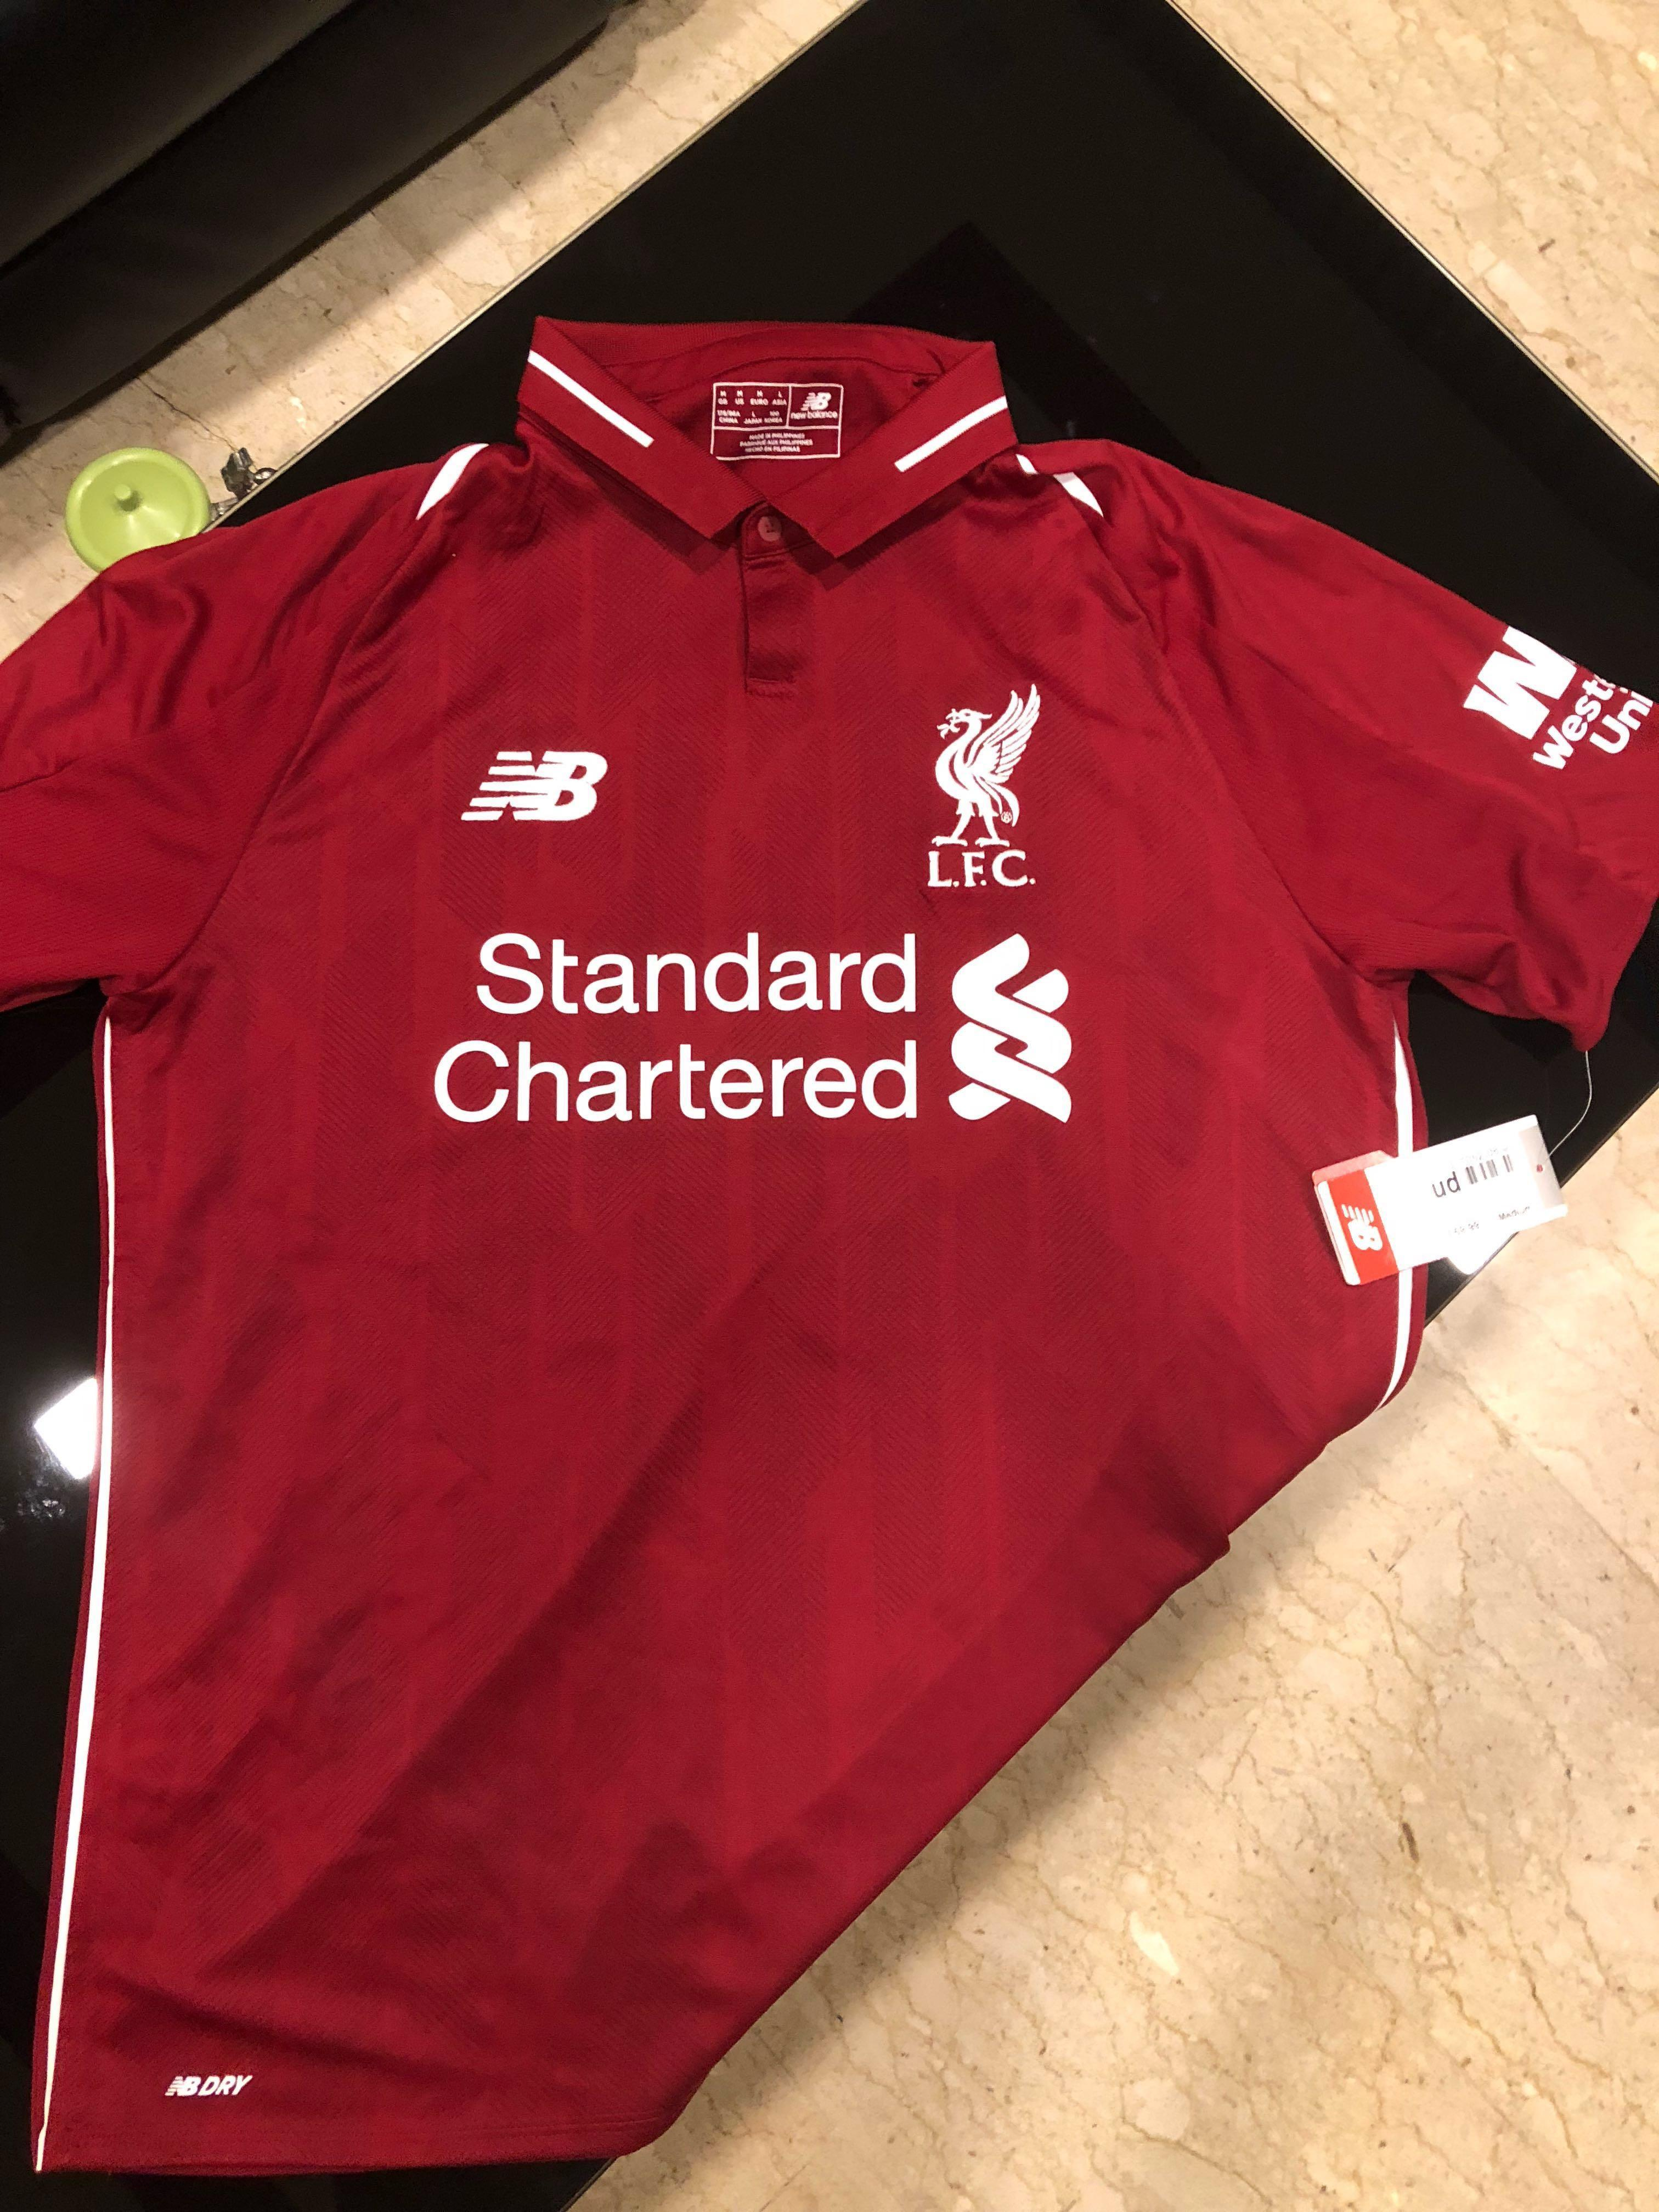 online store b1a5f c0617 Liverpool Fc kit from Anfield. on Carousell